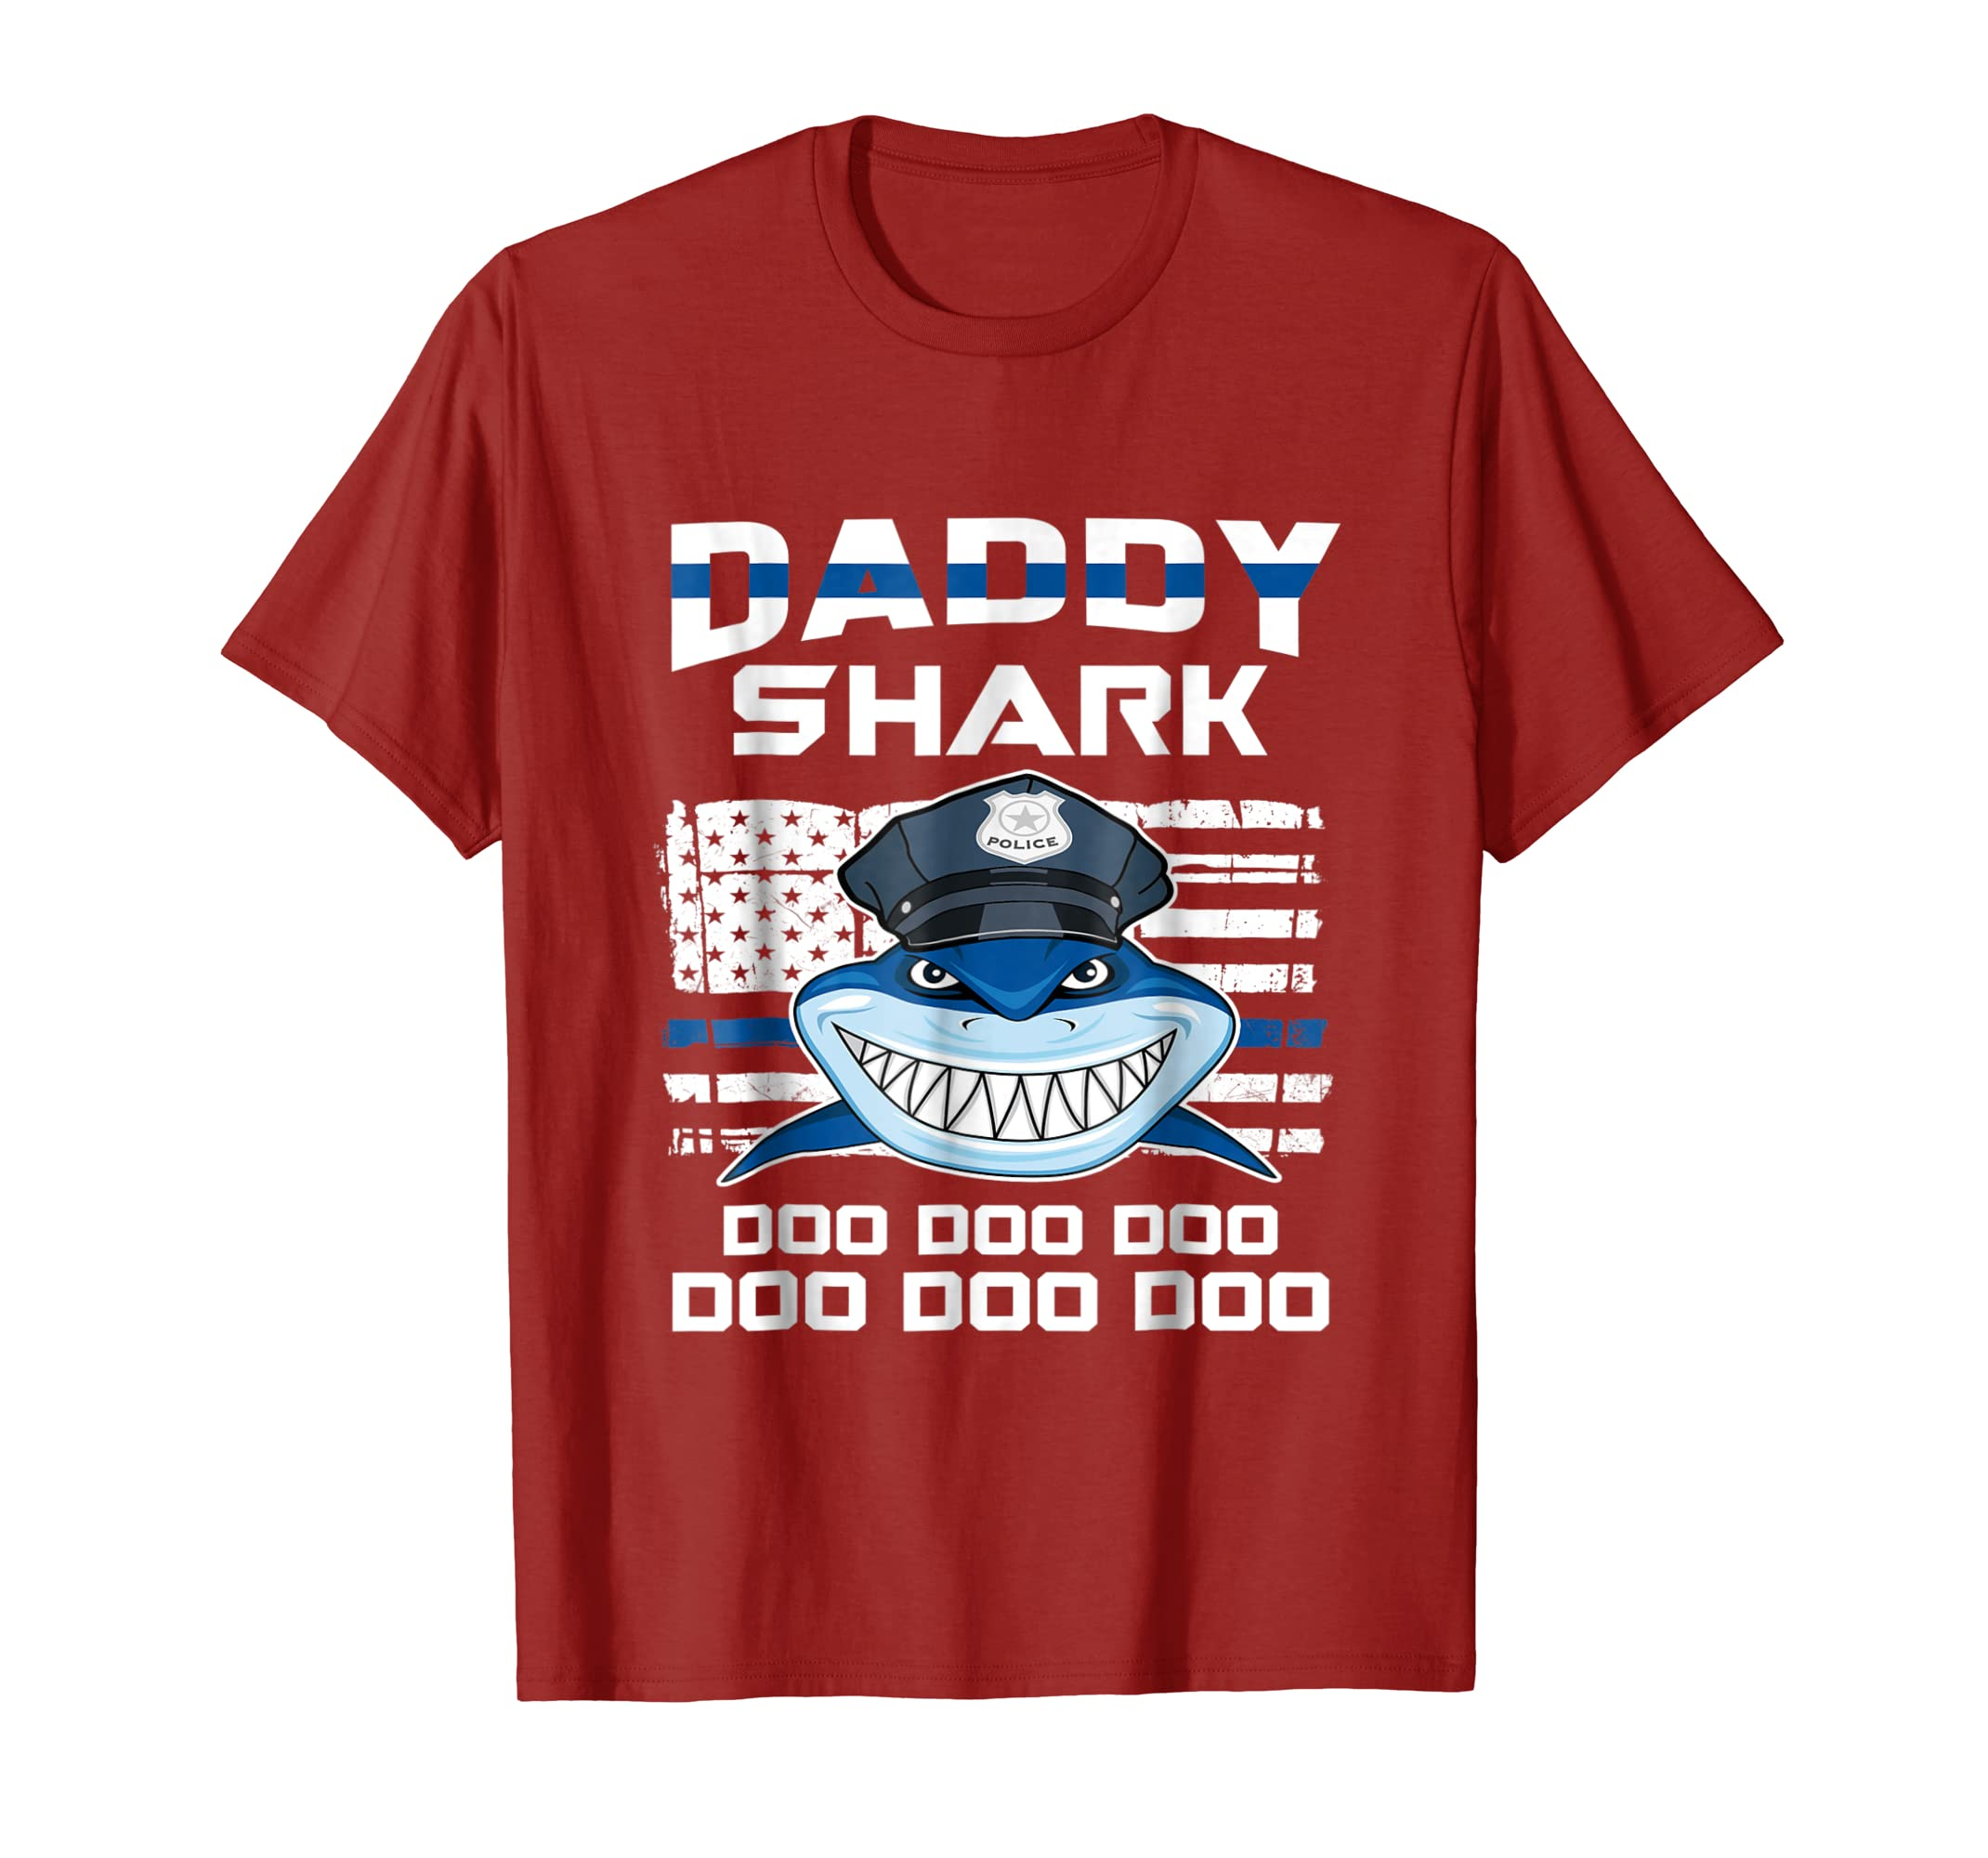 be0f743c939 Amazon.com  Police Daddy Shark Doo Doo Doo T-Shirt  Clothing